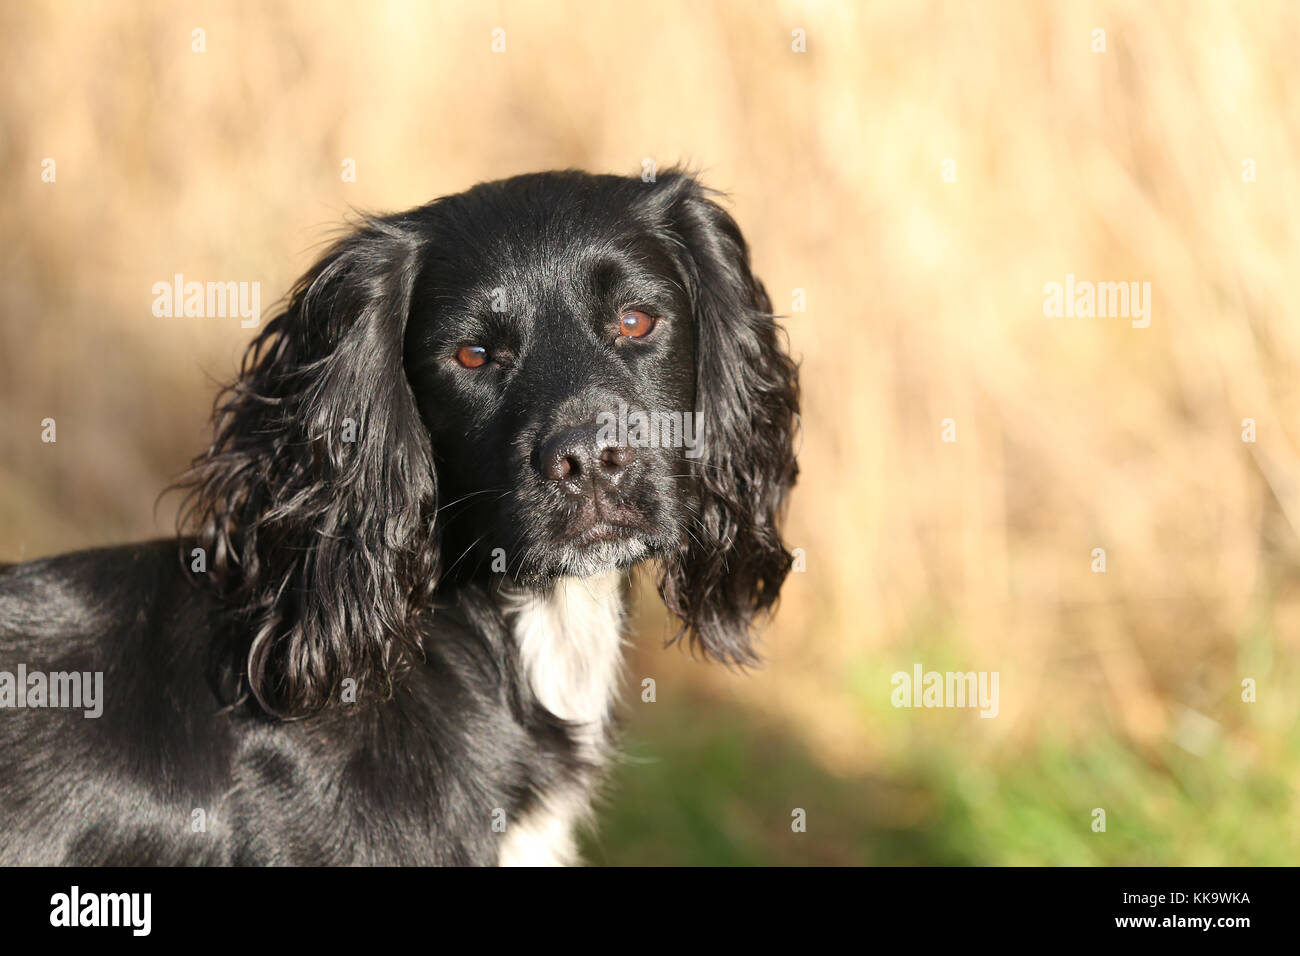 Spaniel-working Cocker working Cocker Spaniel headshot Stockbild